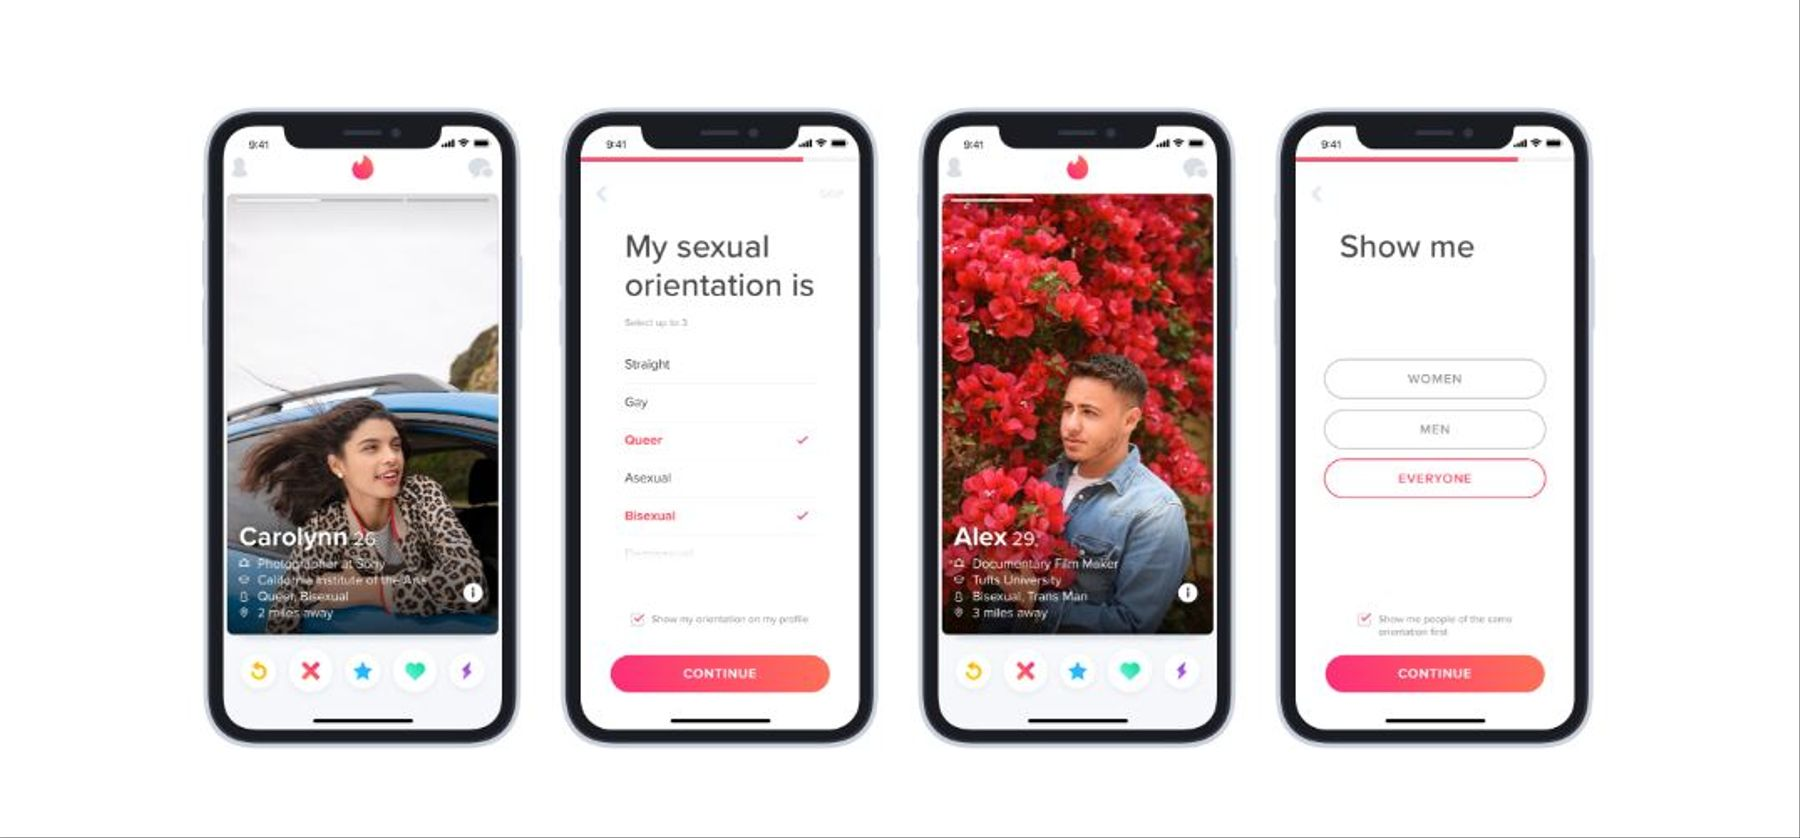 Tinder Introduces Sexual Orientation Option to Help LGBTQ